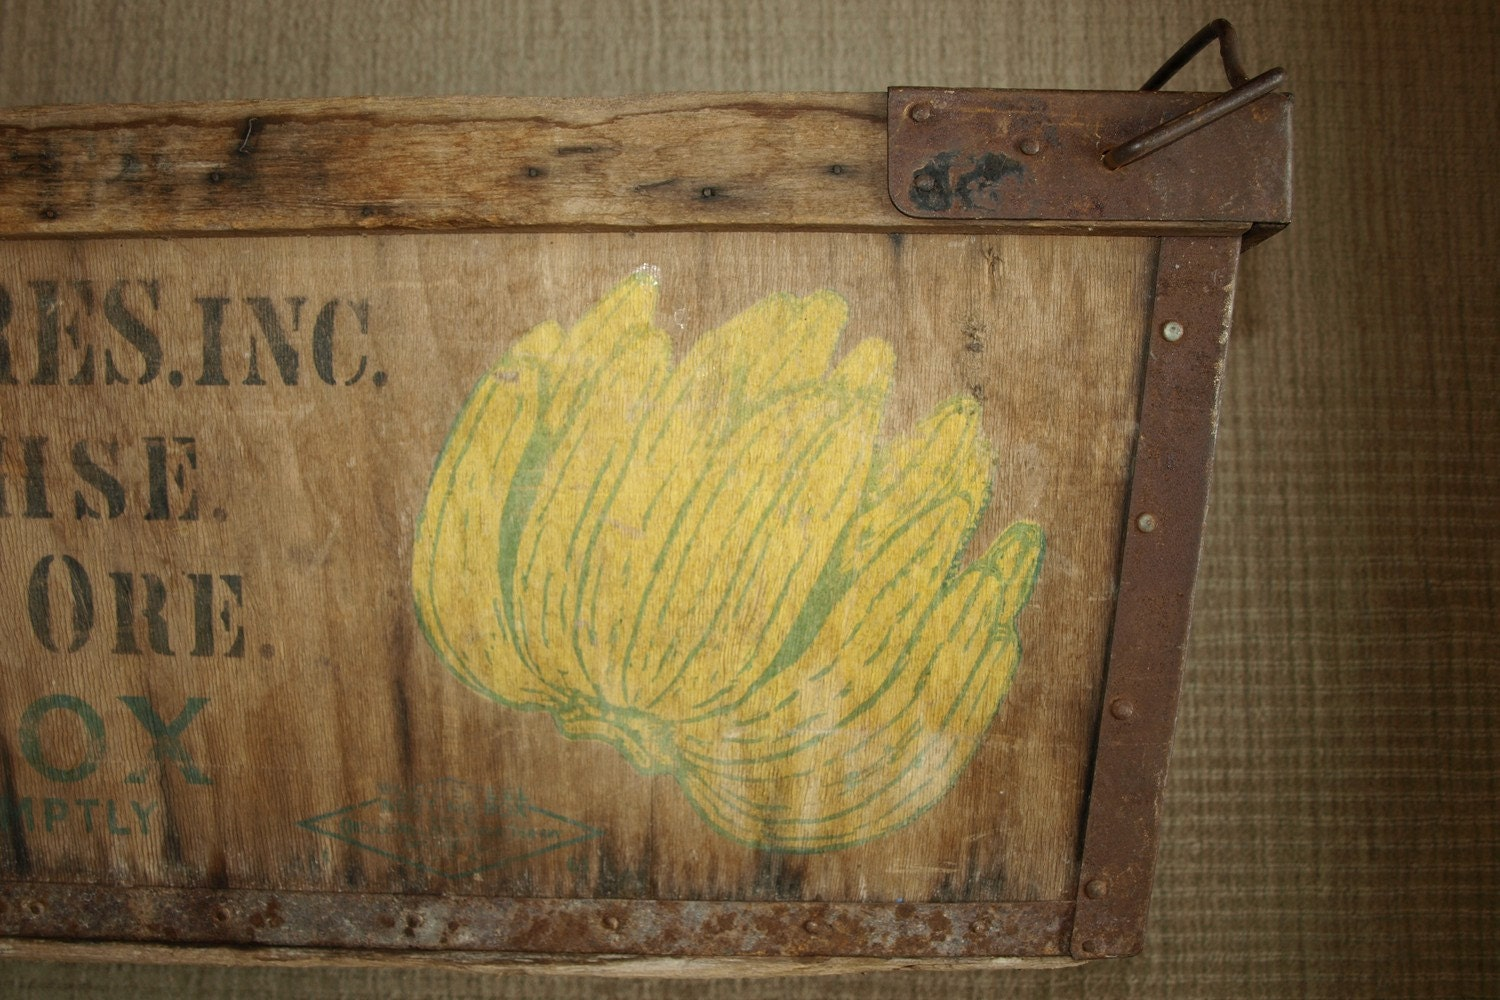 Vintage Wood And Metal Banana Produce Crate Box By